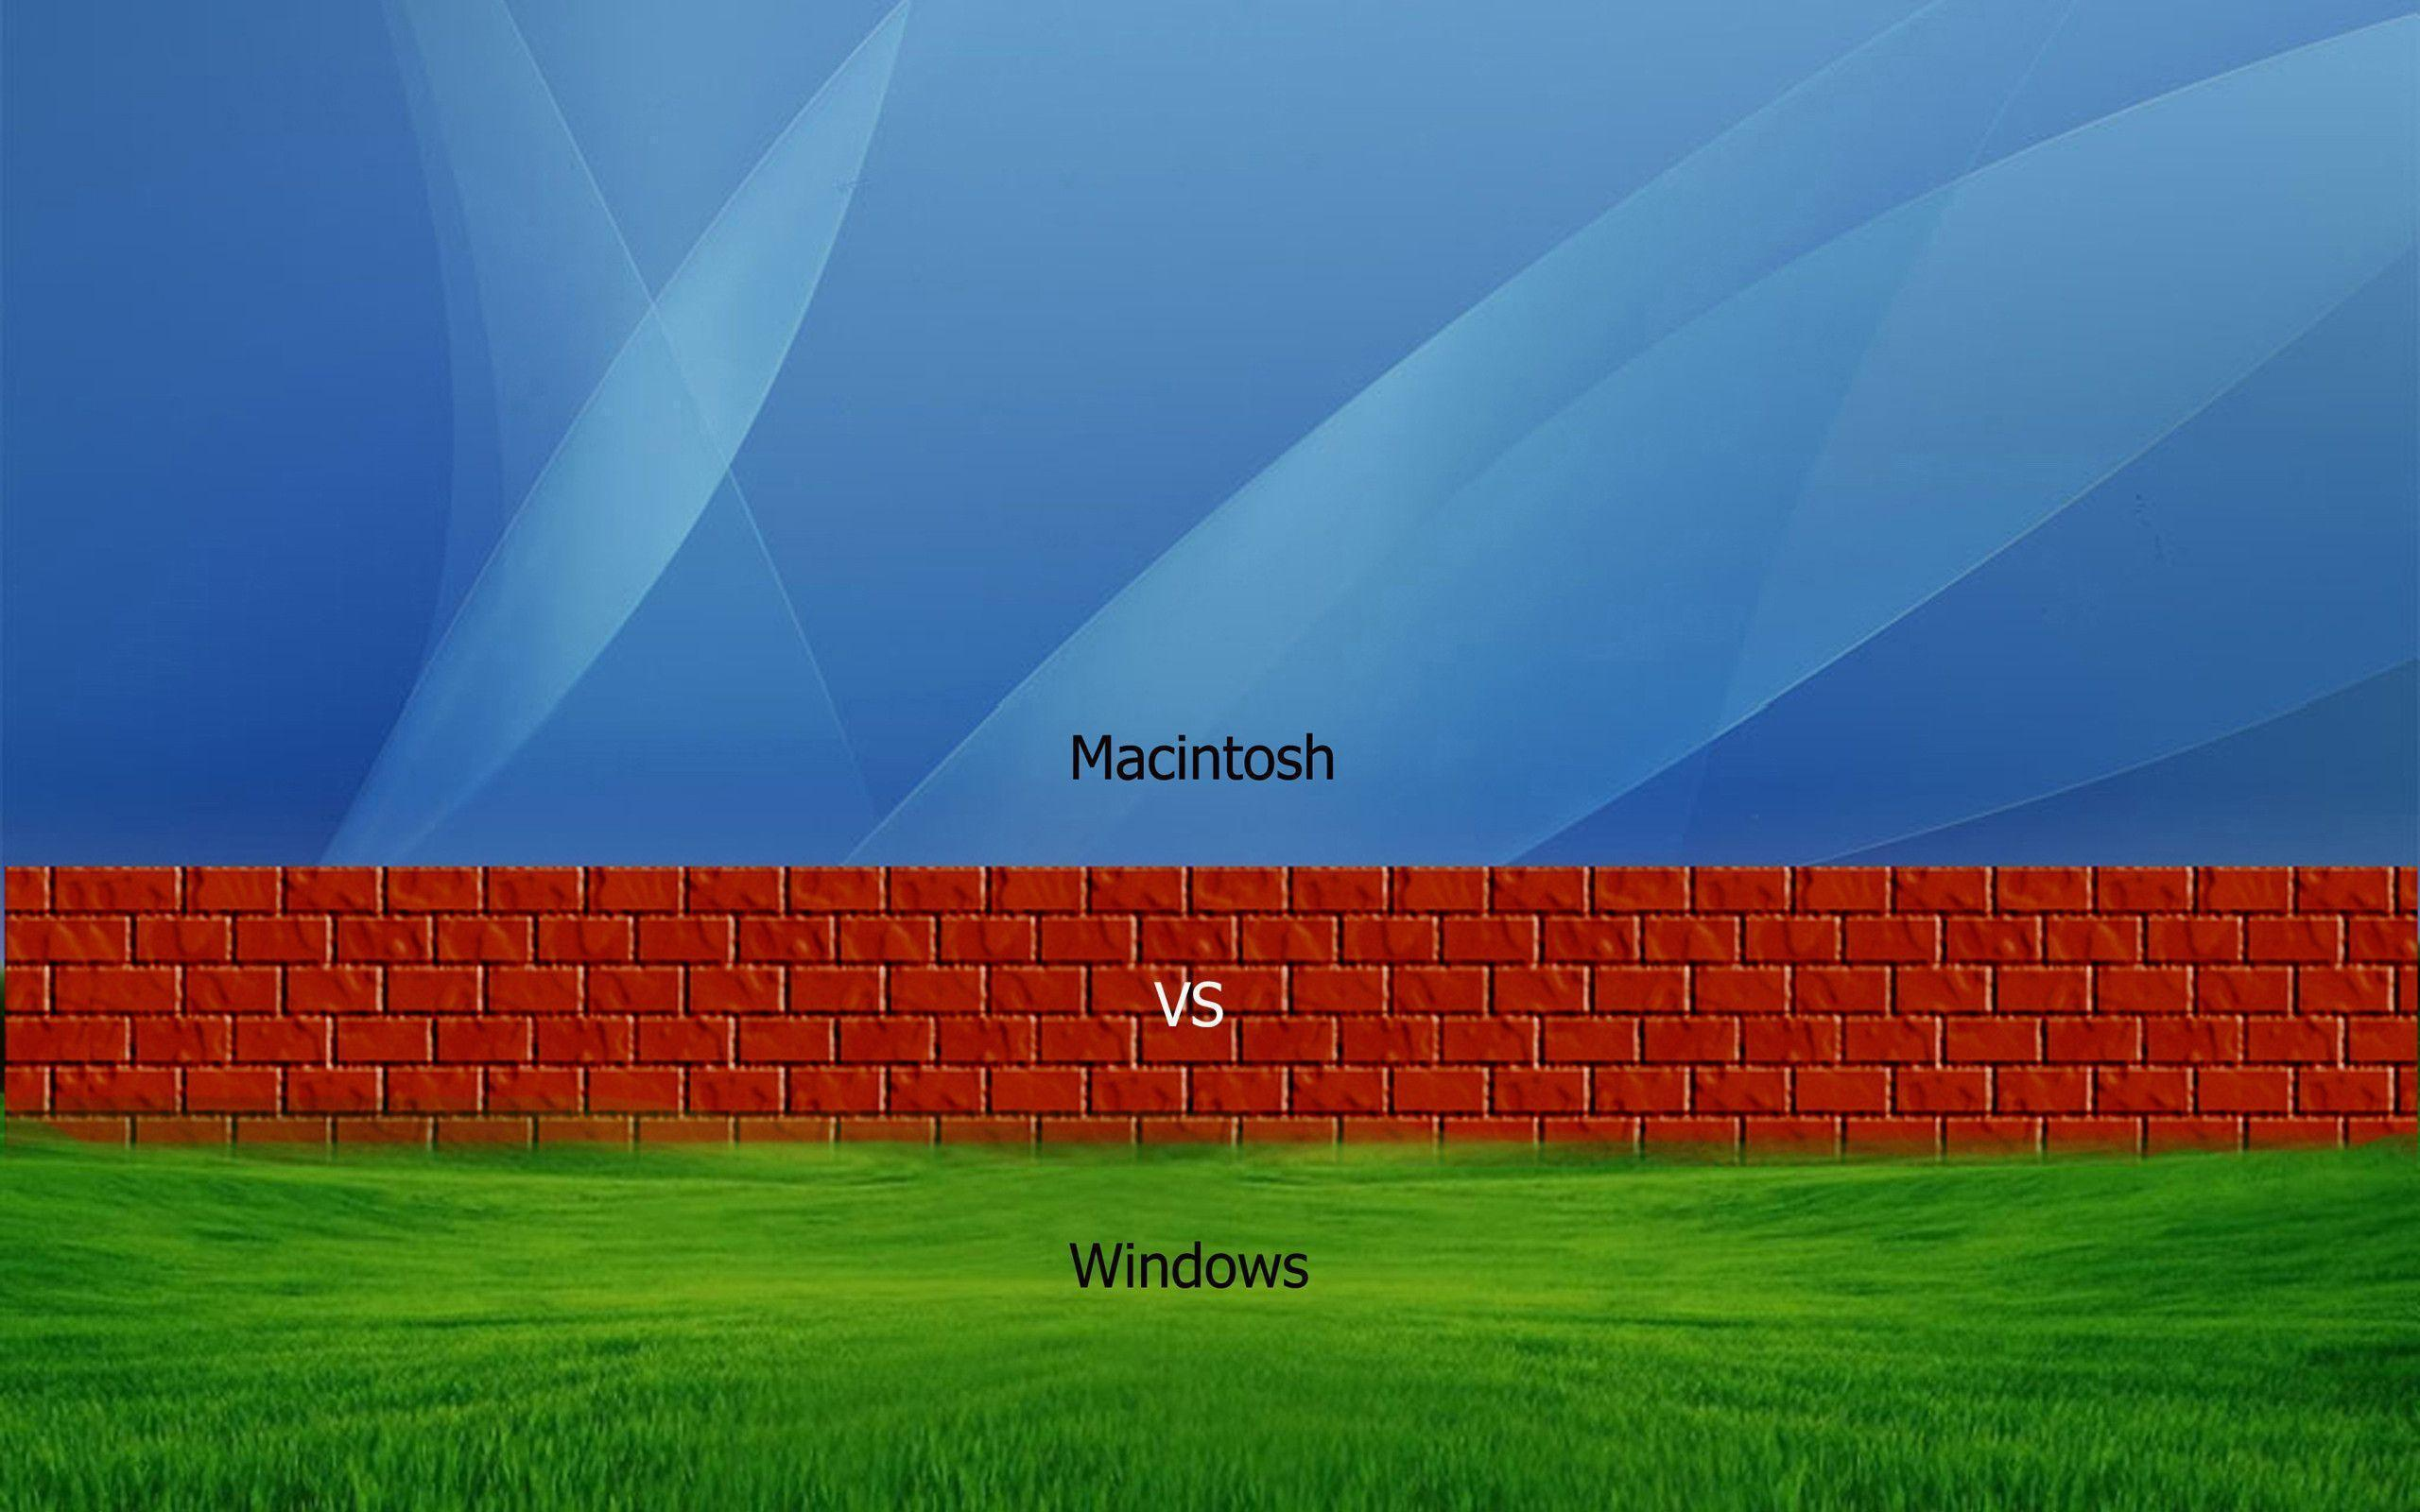 Mac VS Windows by sagorpirbd